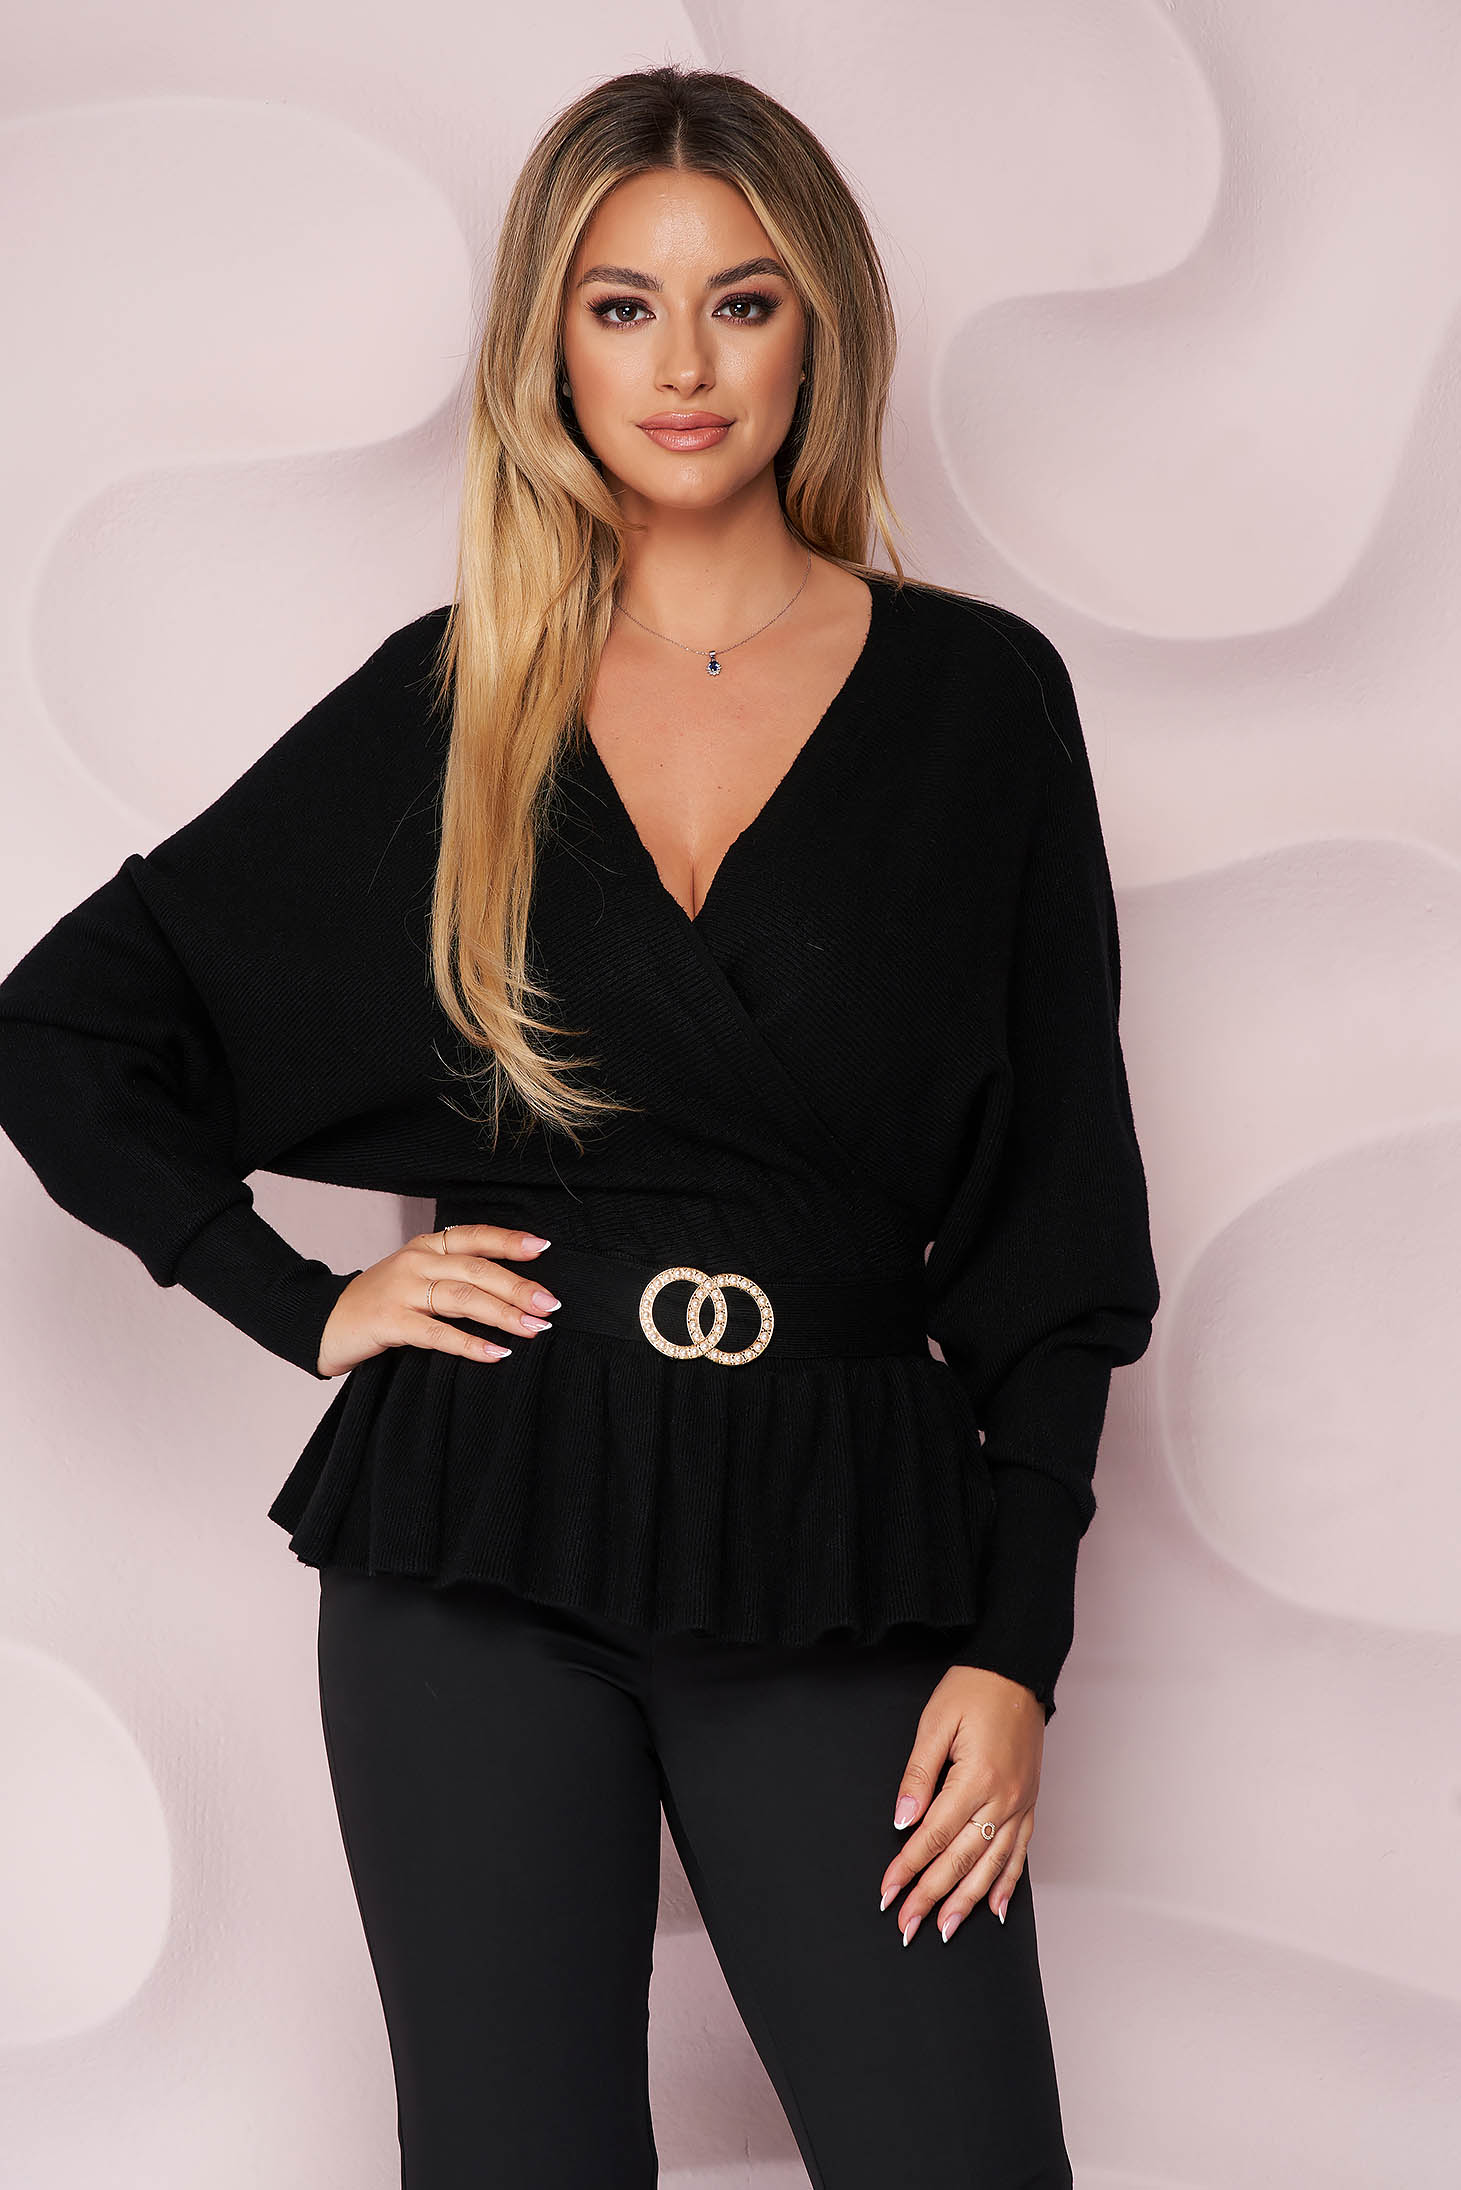 Black women`s blouse thin fabric knitted long sleeve accessorized with breastpin with ruffle details office